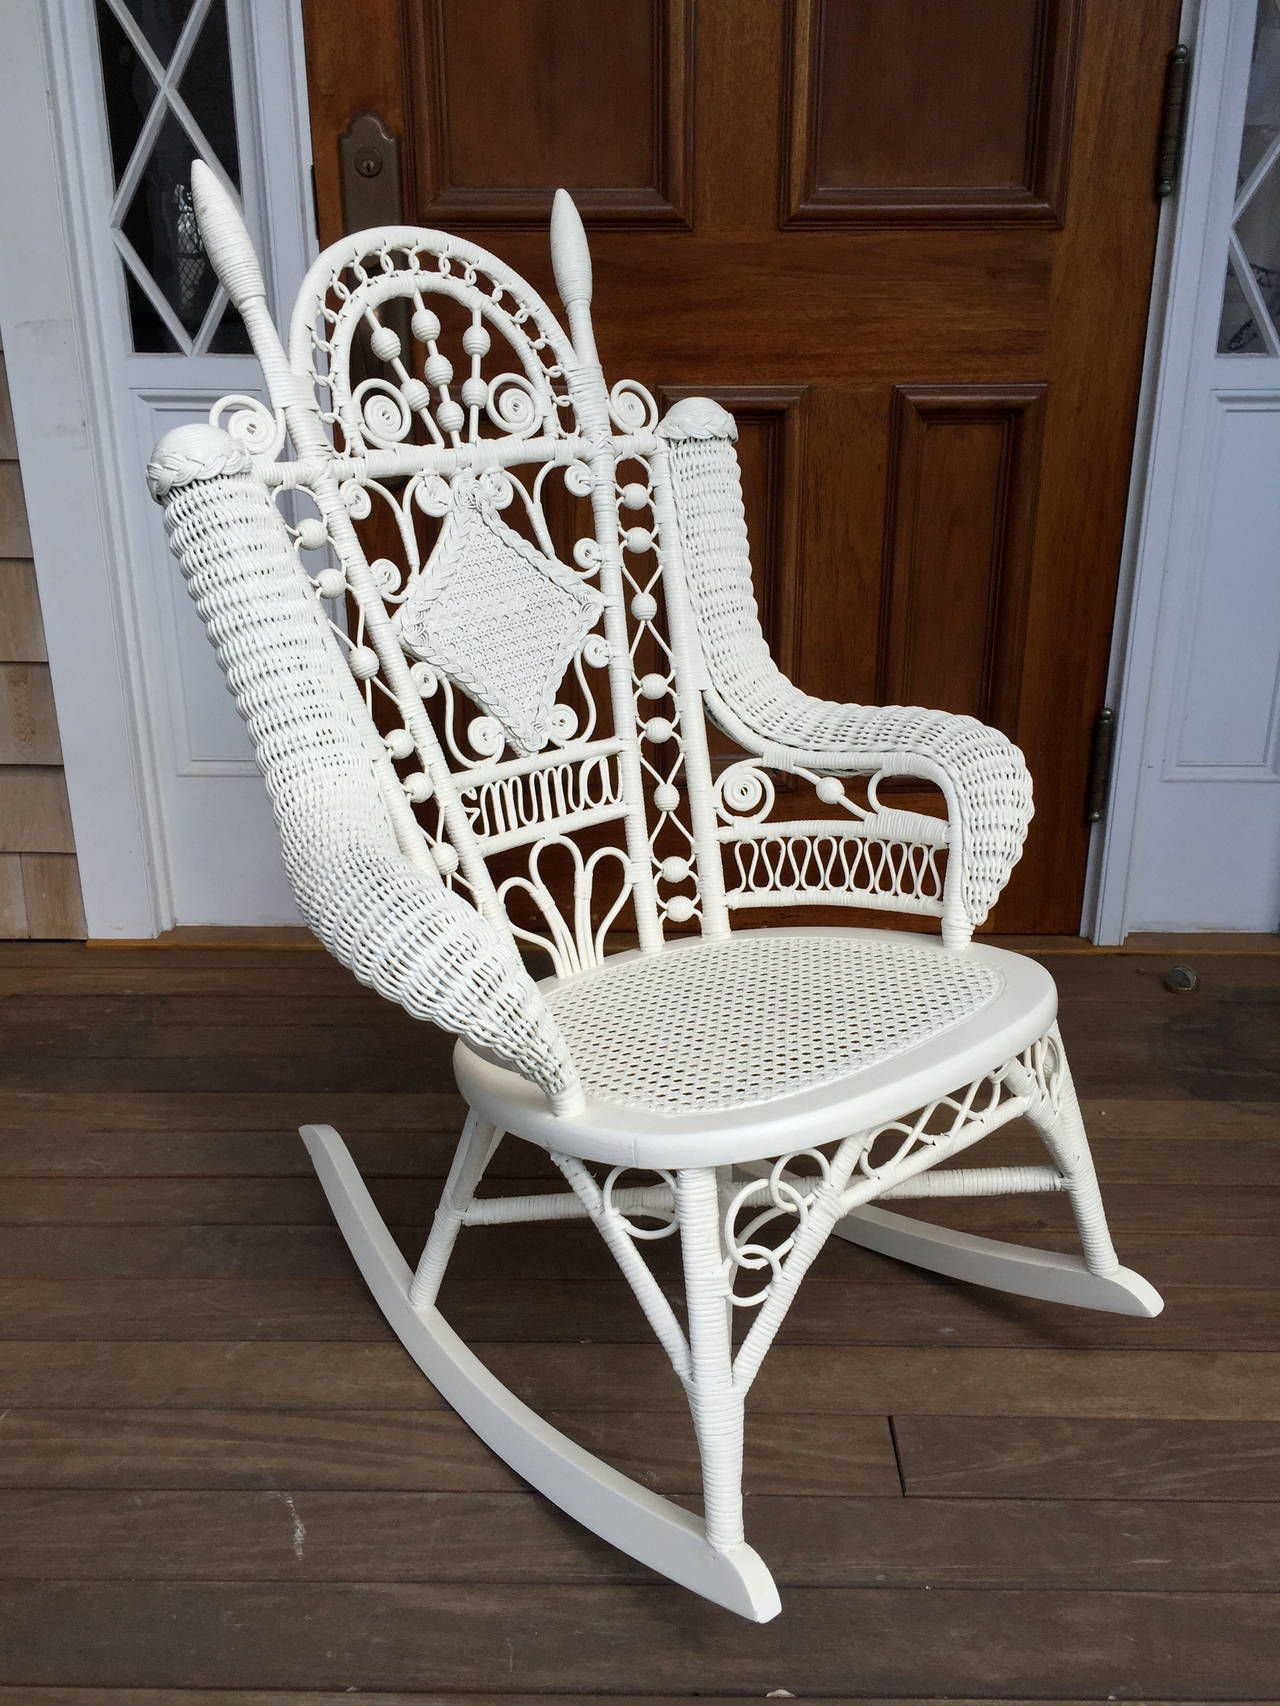 Black Wicker Rocking Chairs Antique Victorian Wicker Quotemma Quot Rocker Black White And